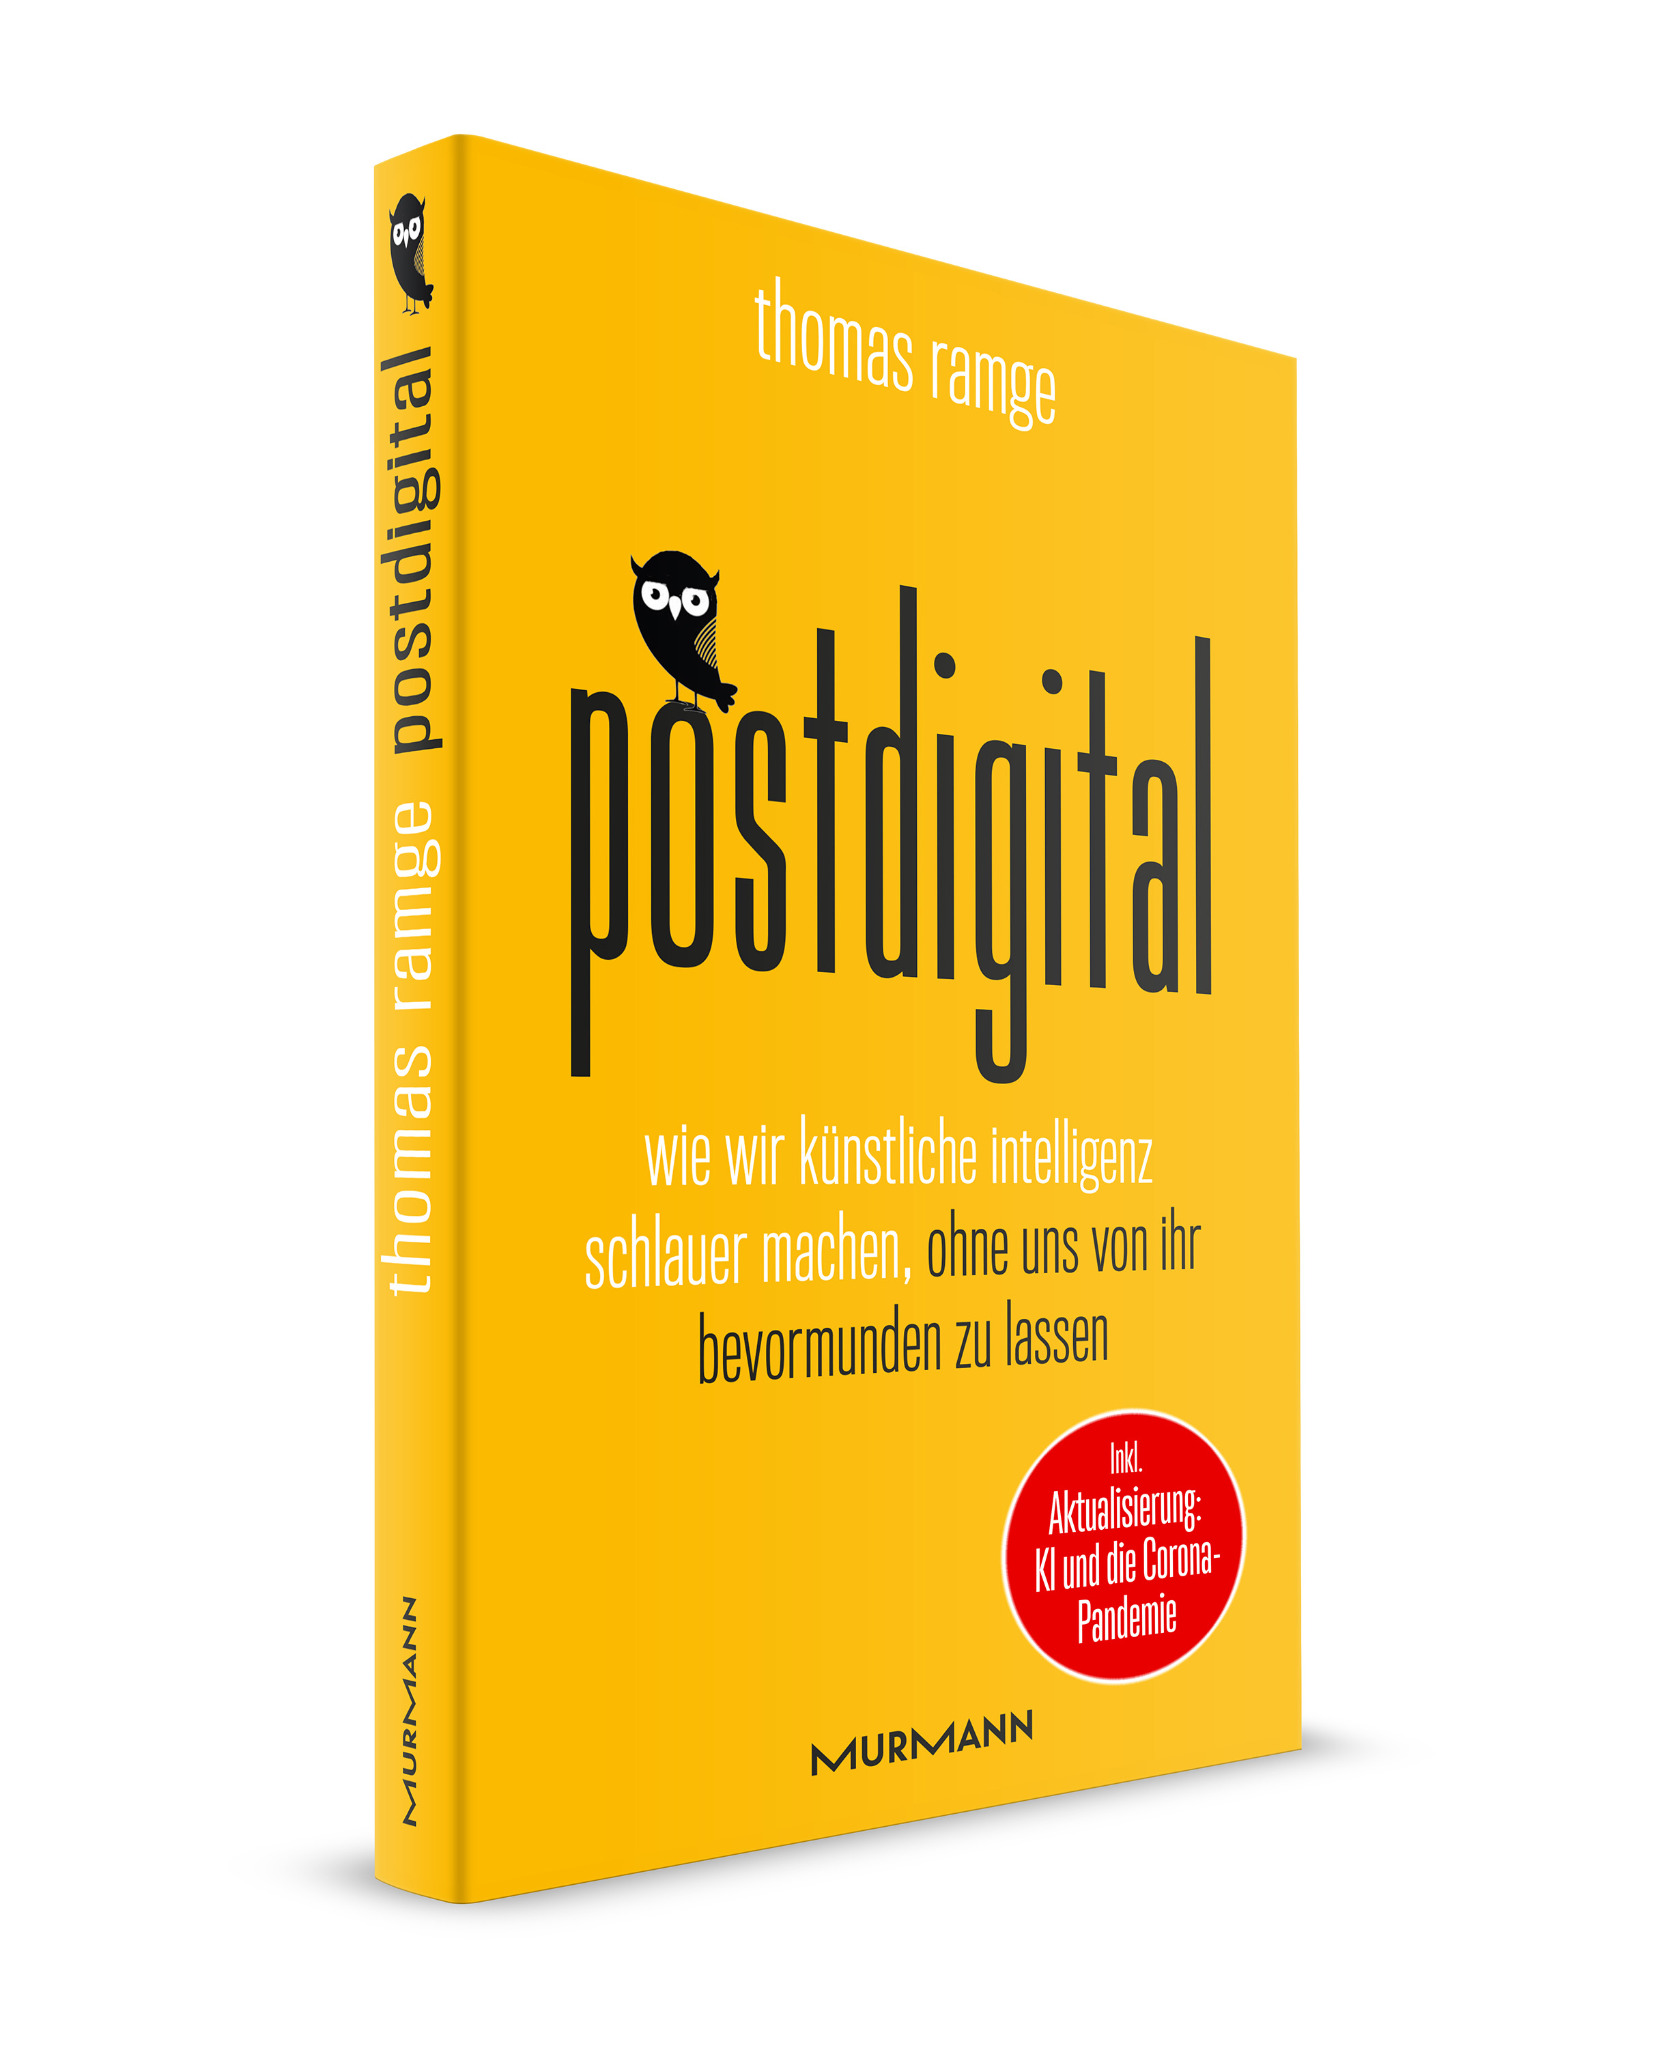 *postdigital / Thomas Ramge (E-Book)